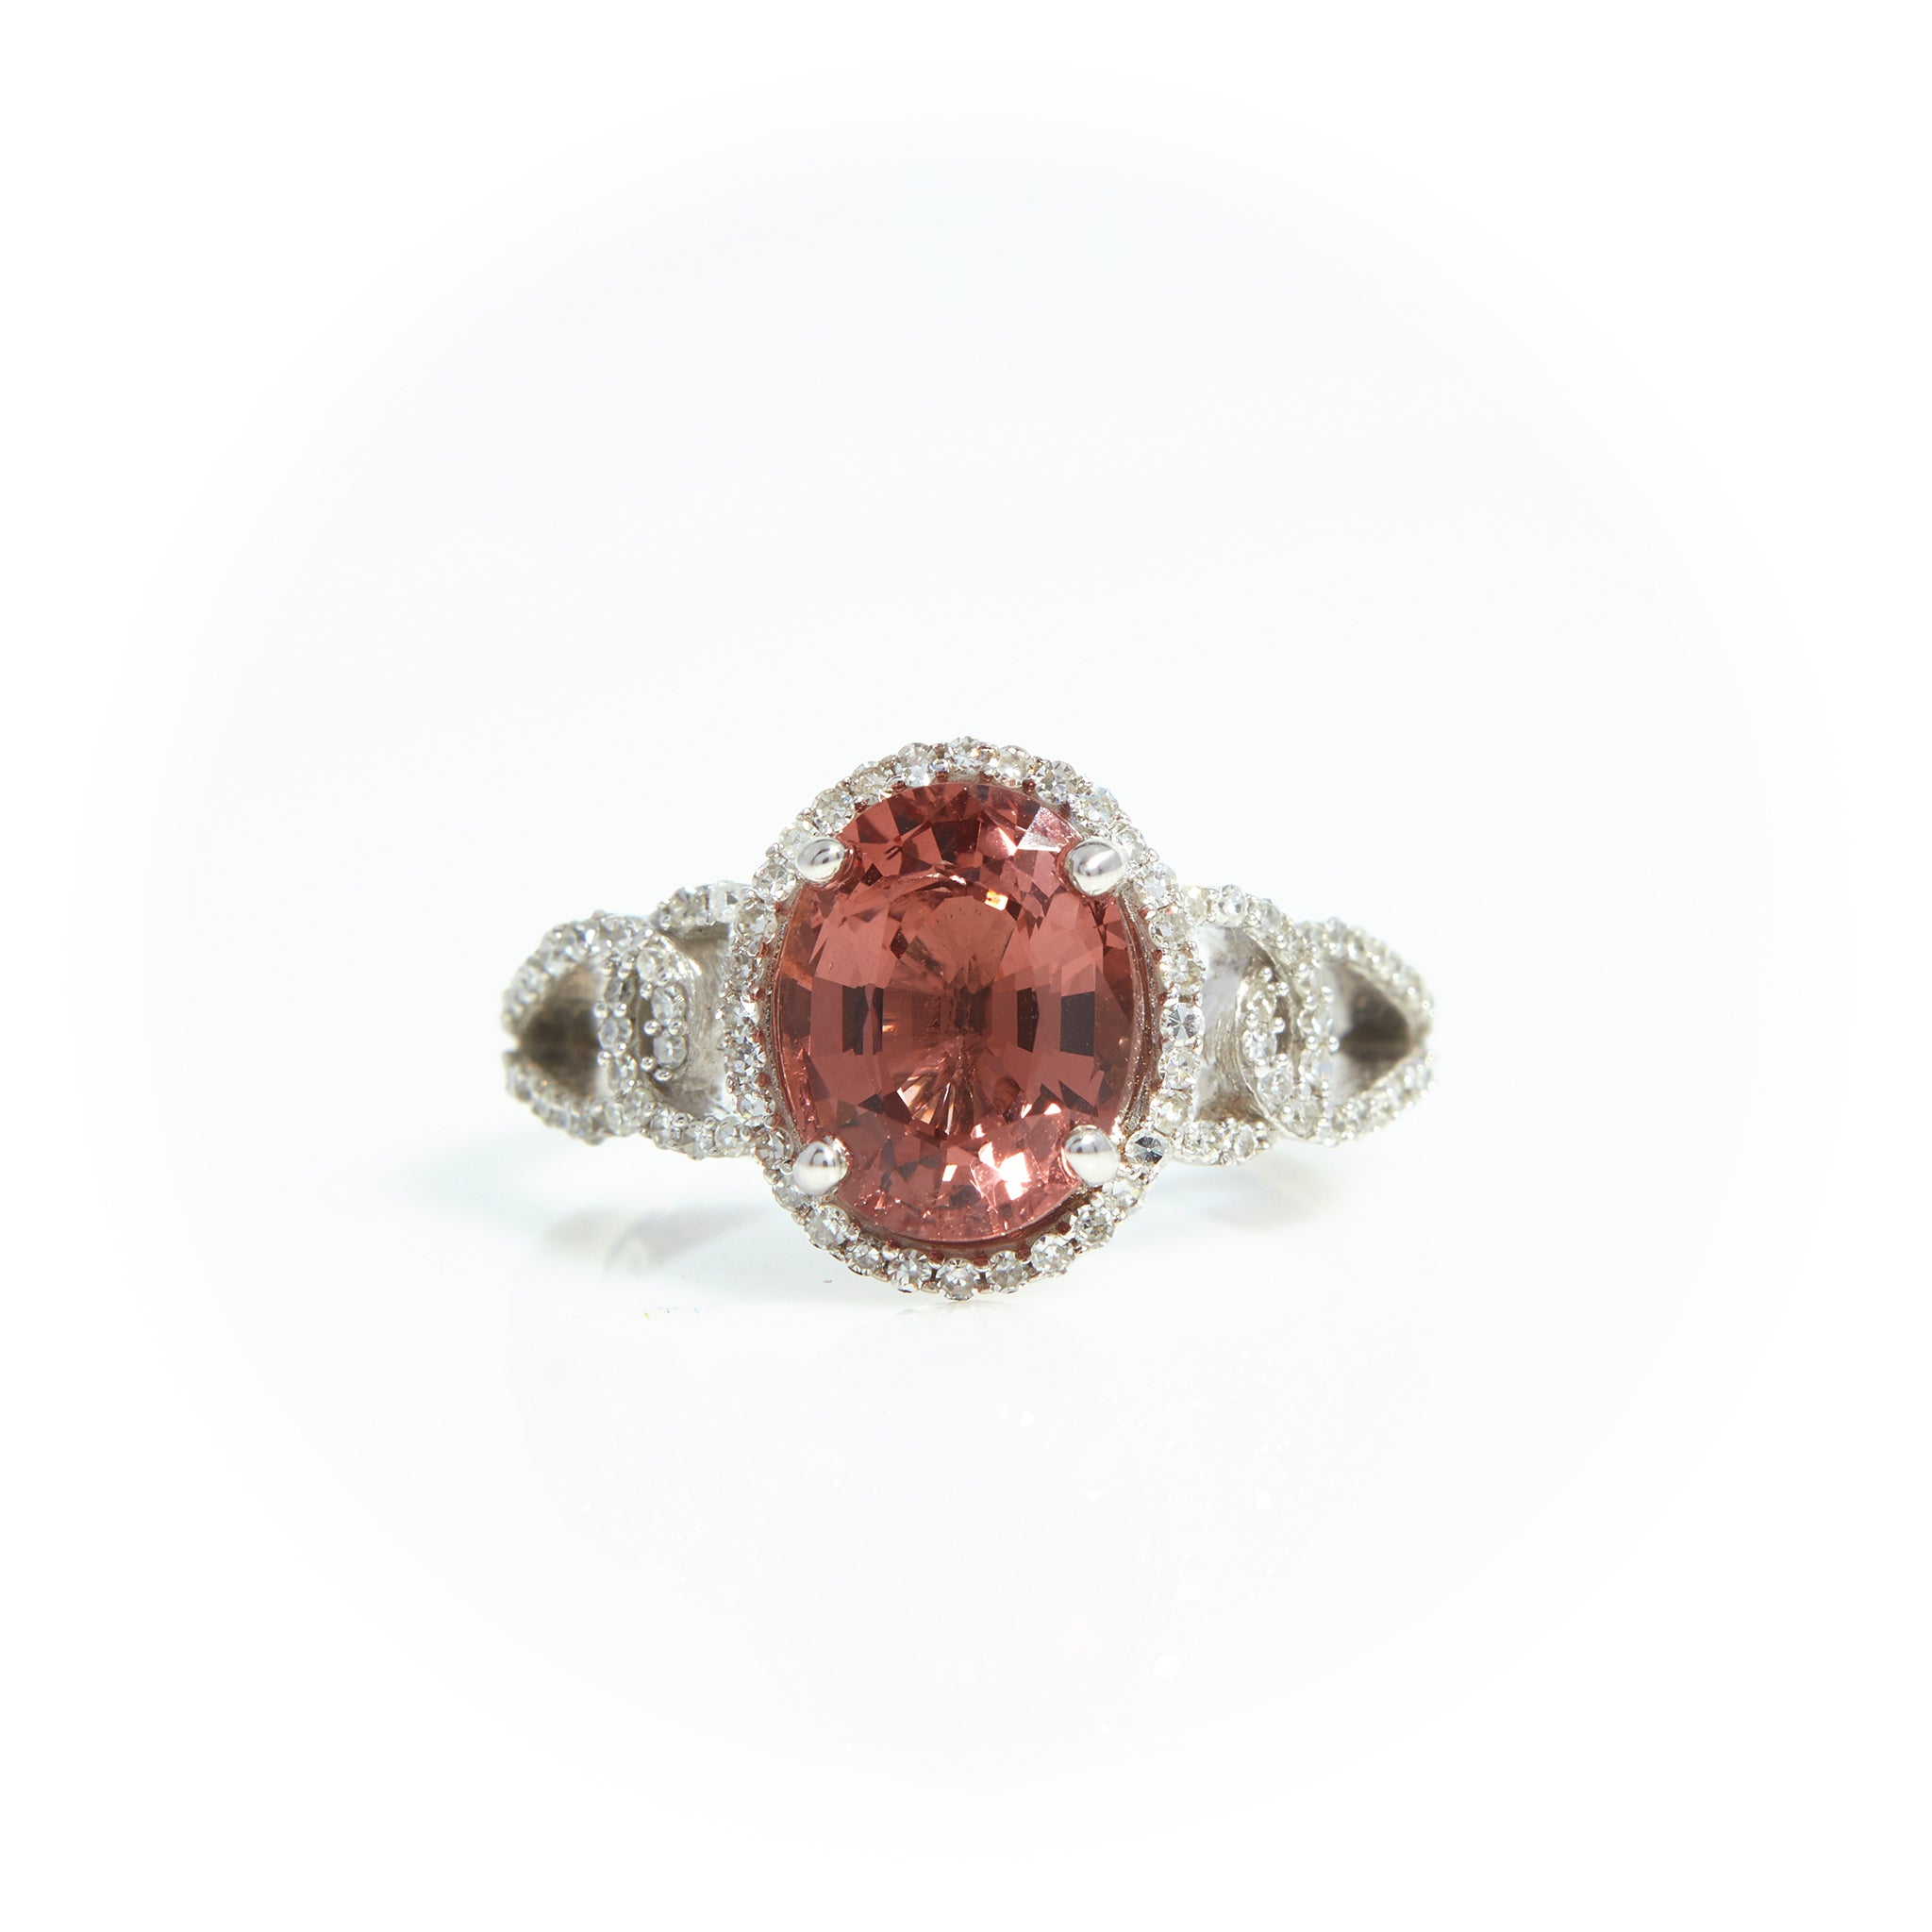 *SOLD* Spinel and Diamond Ring in White Gold - Sindur